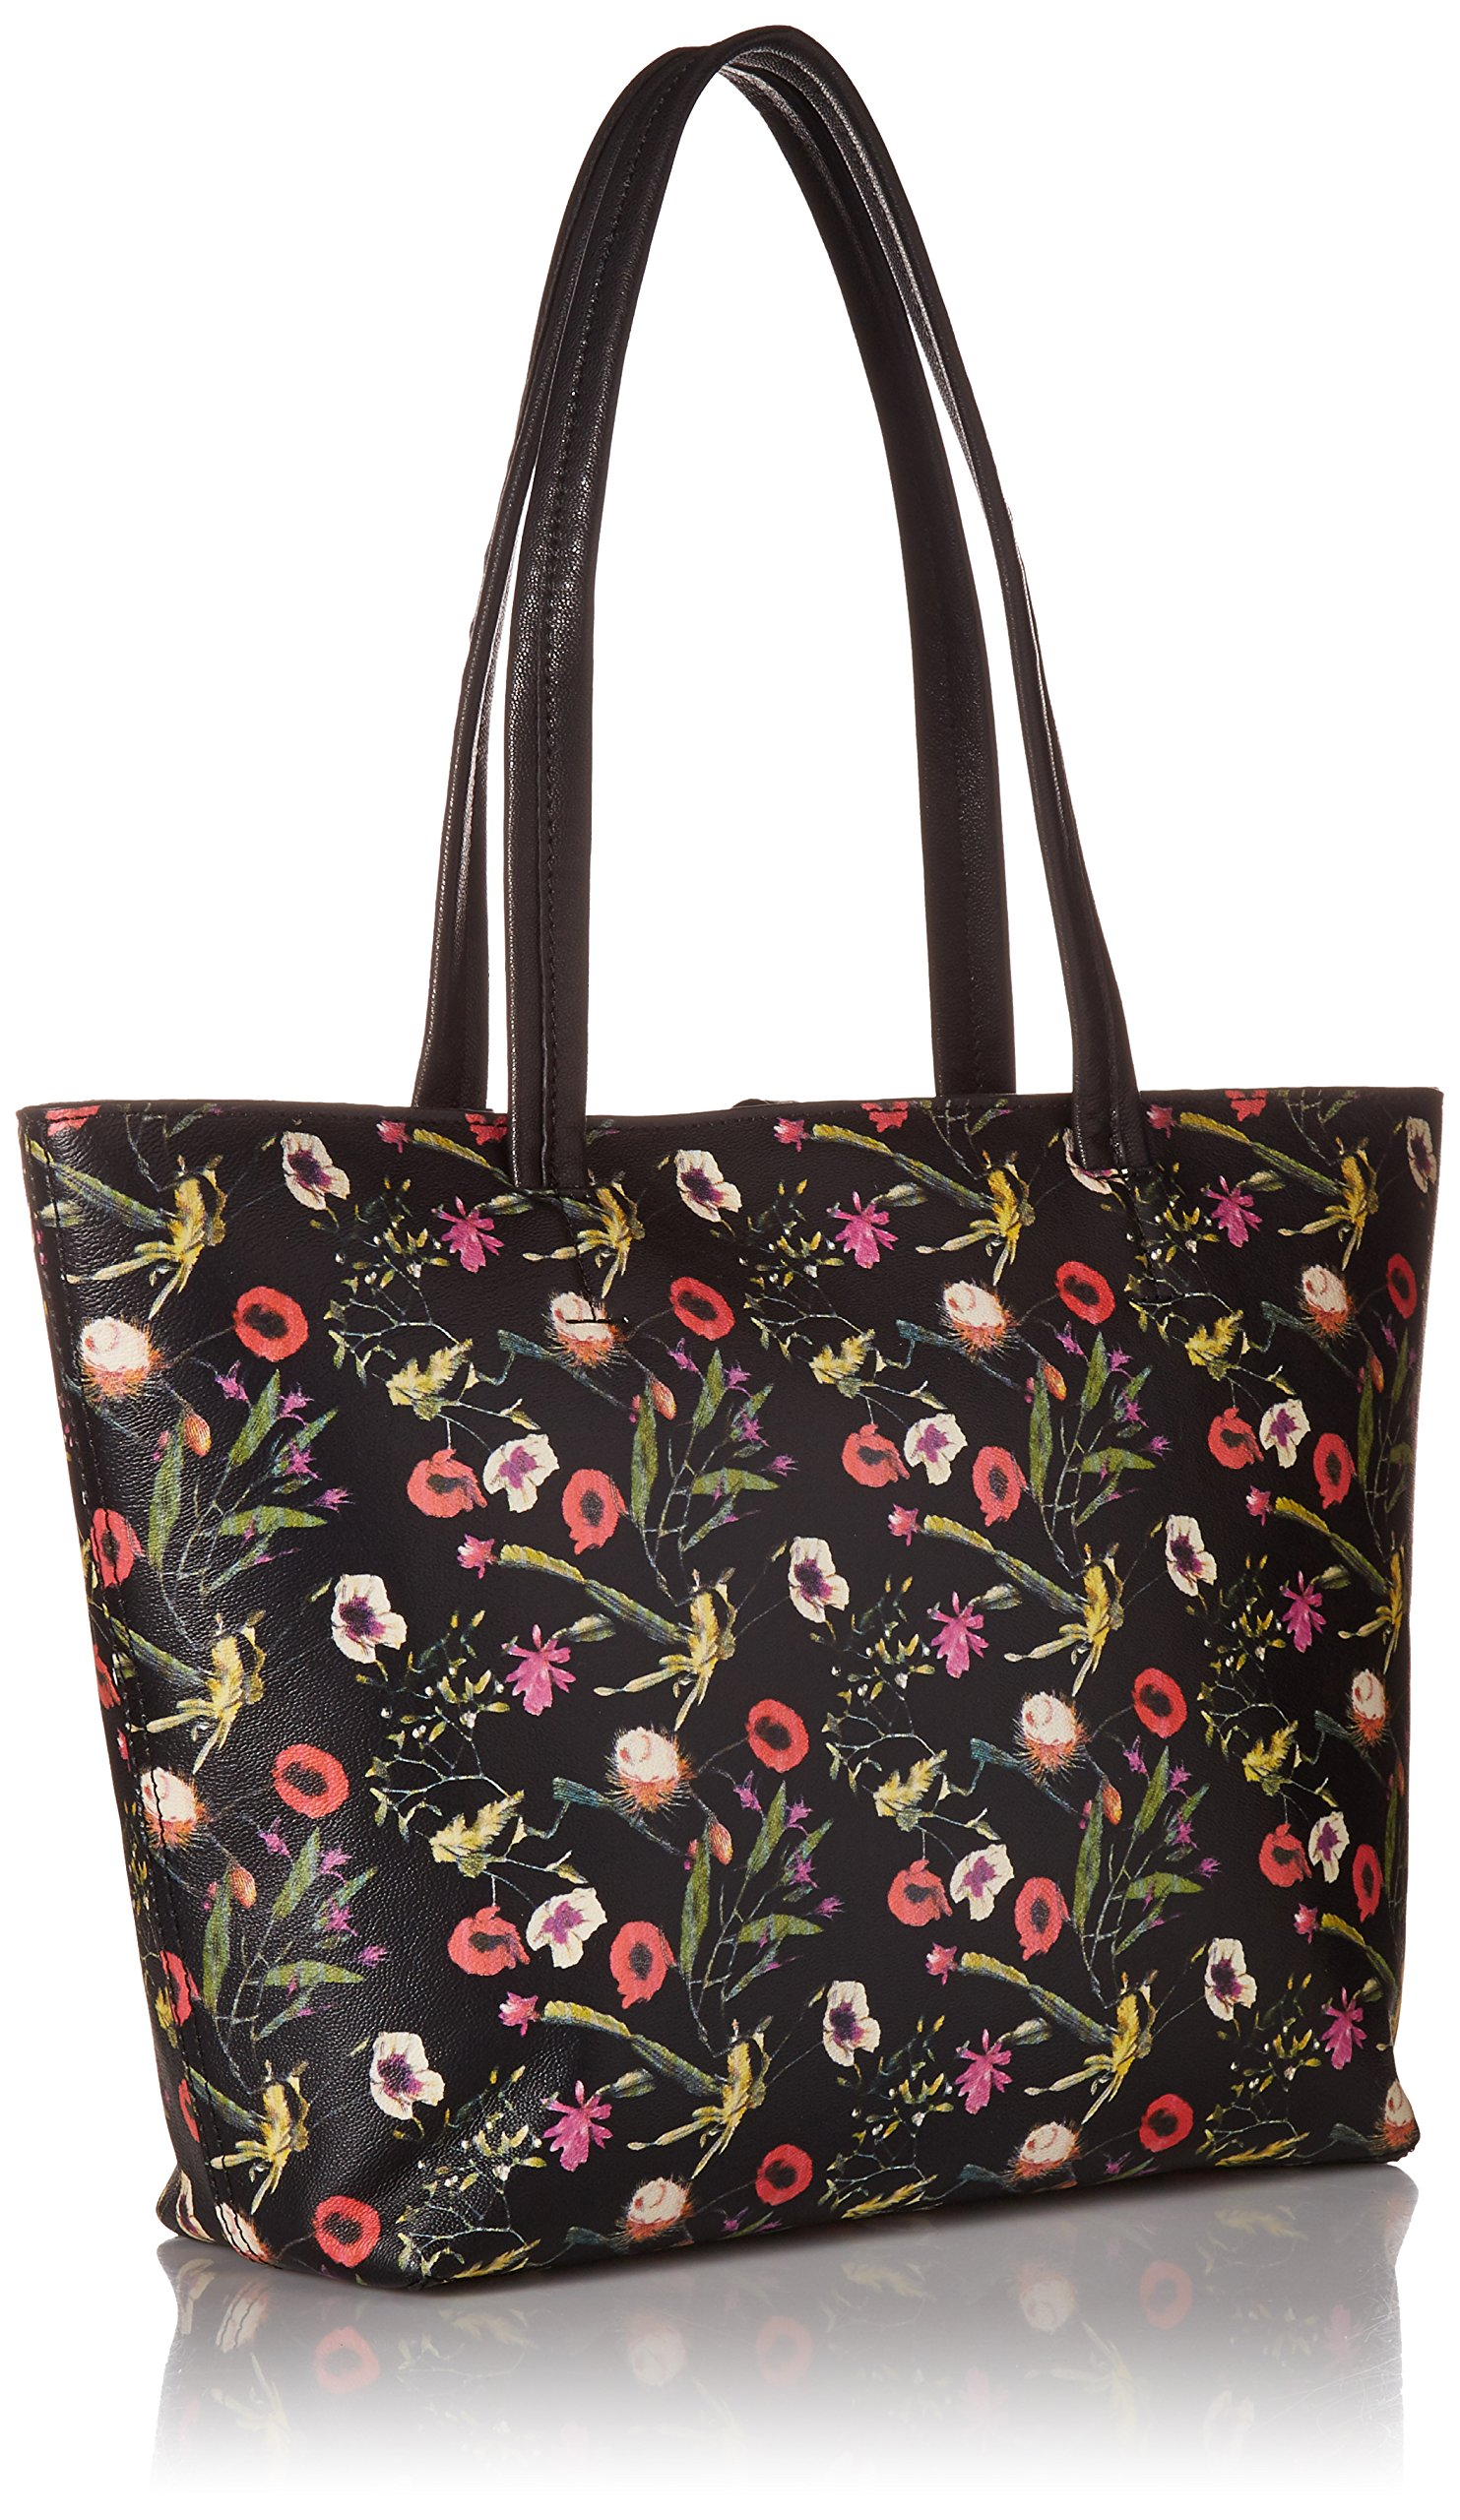 Vince Camuto Leila Small Tote, Black/Multi by Vince Camuto (Image #2)